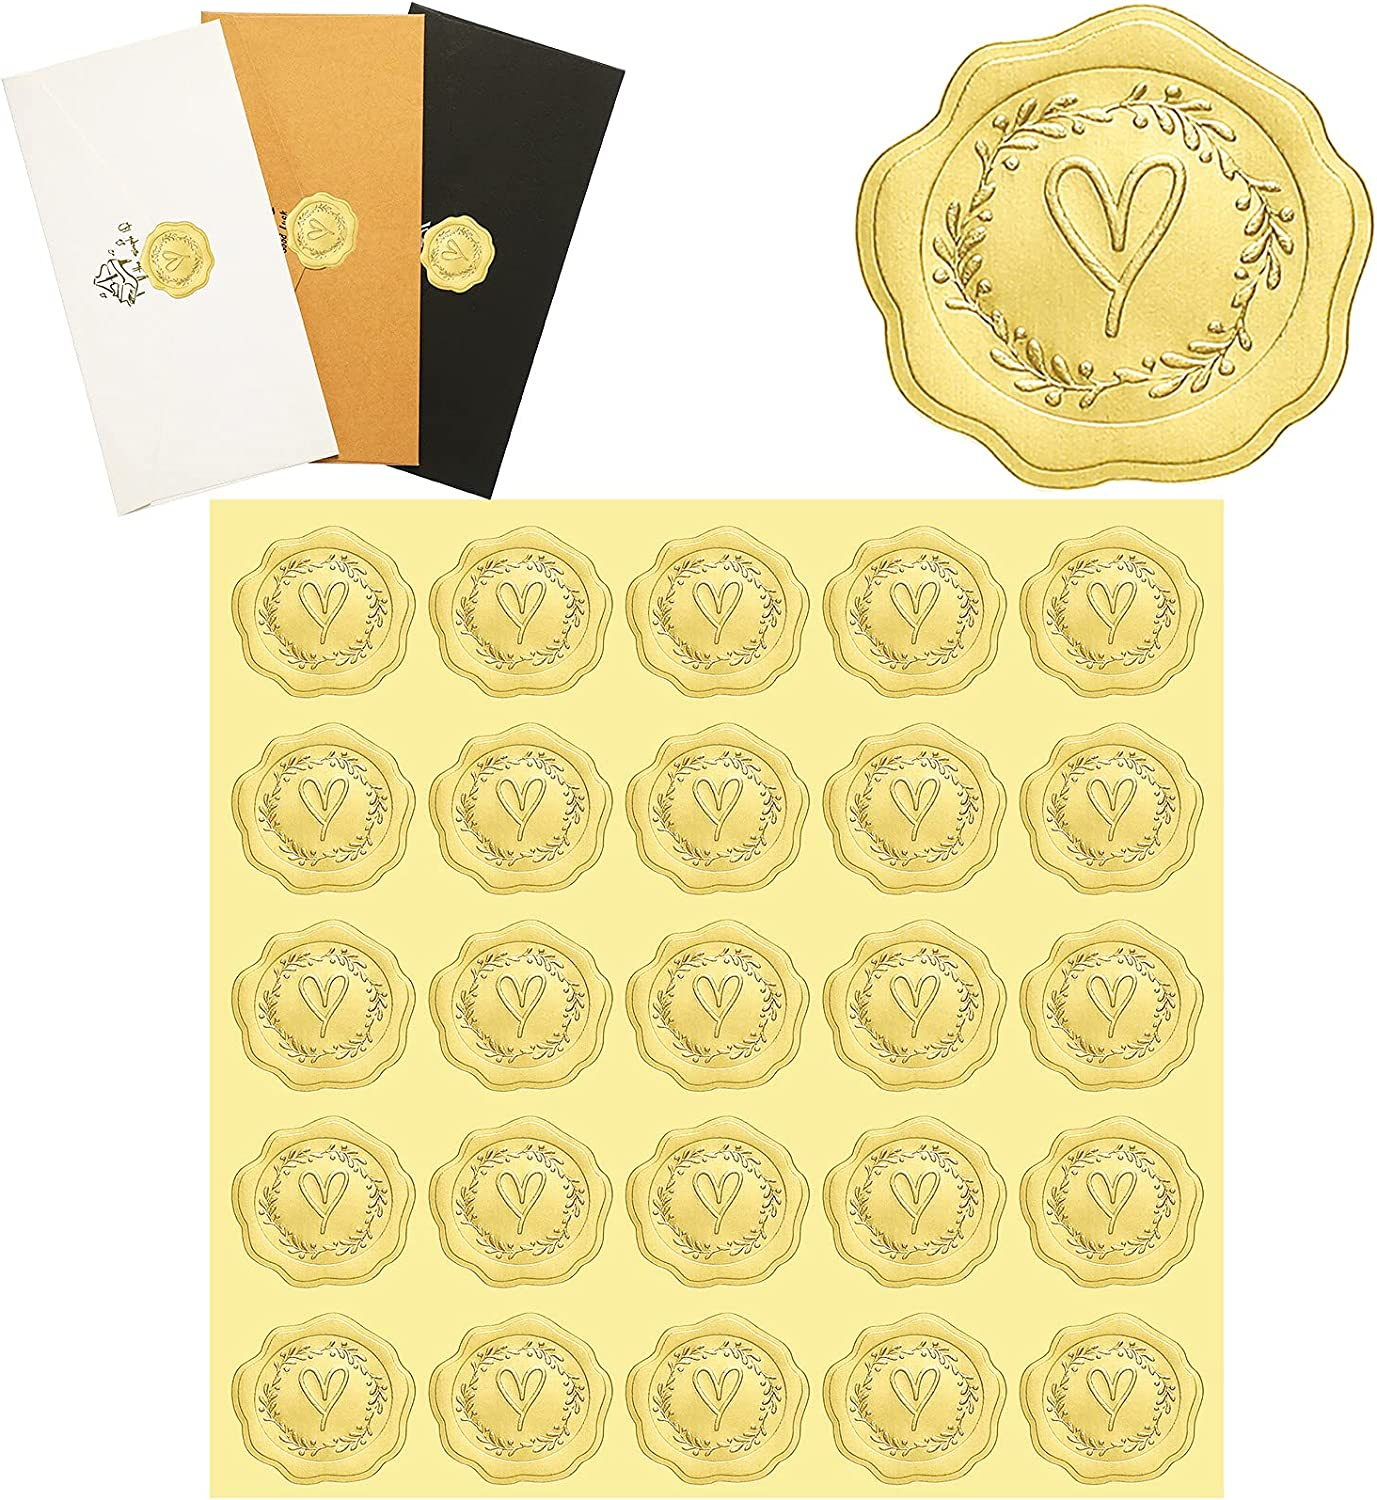 350 Pieces Gold Embossed Wax Seal Looking Self-Adhesive Heart Envelope Seals Stickers for Wedding Invitations, Greeting Cards, Party Favors, Gift Packaging